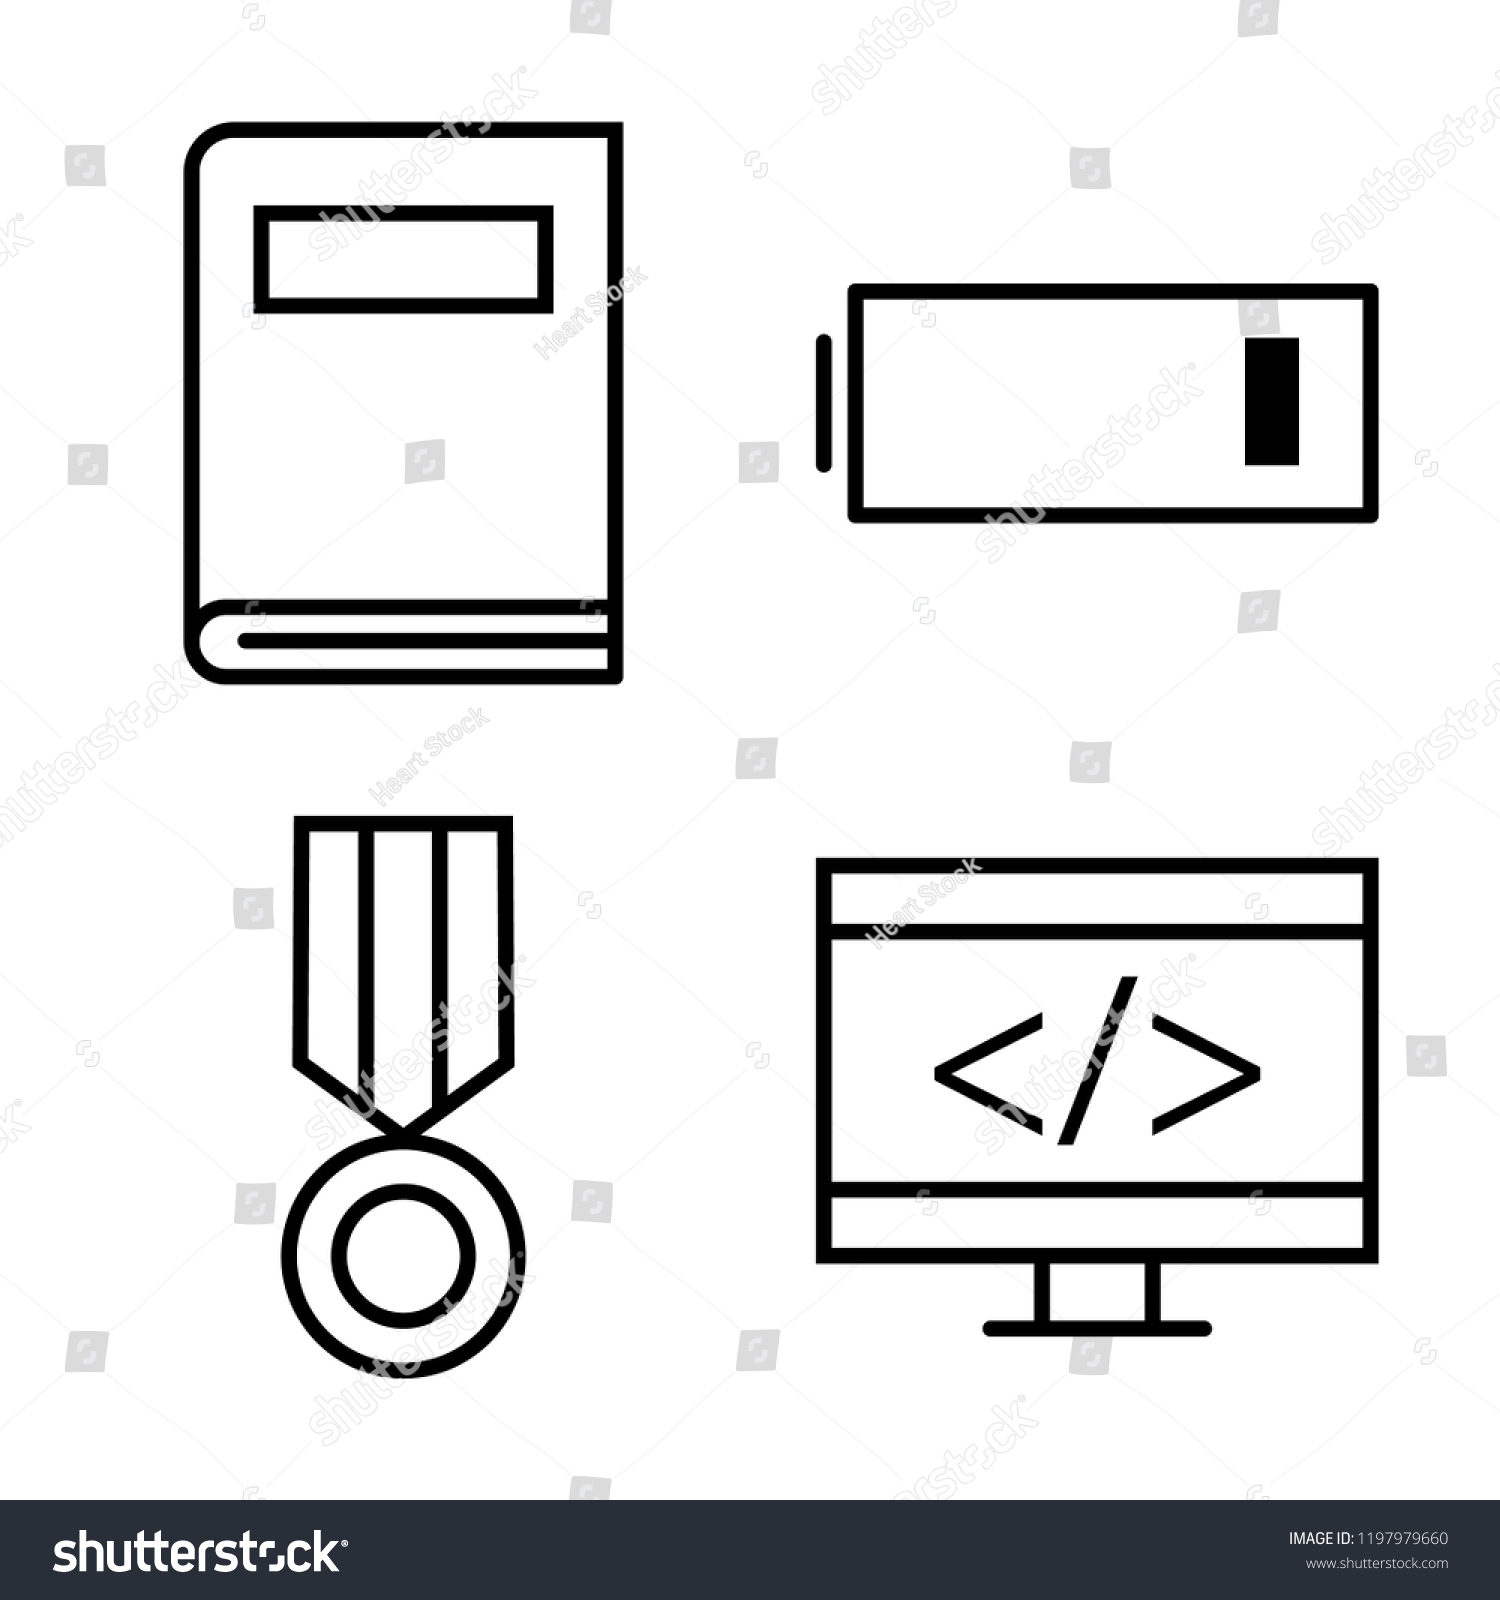 Set 4 Simple Vector Icons Such Stock Royalty Free Battery Cell Diagram Editable Powerpoint Template Of As Book Low Medal Coding